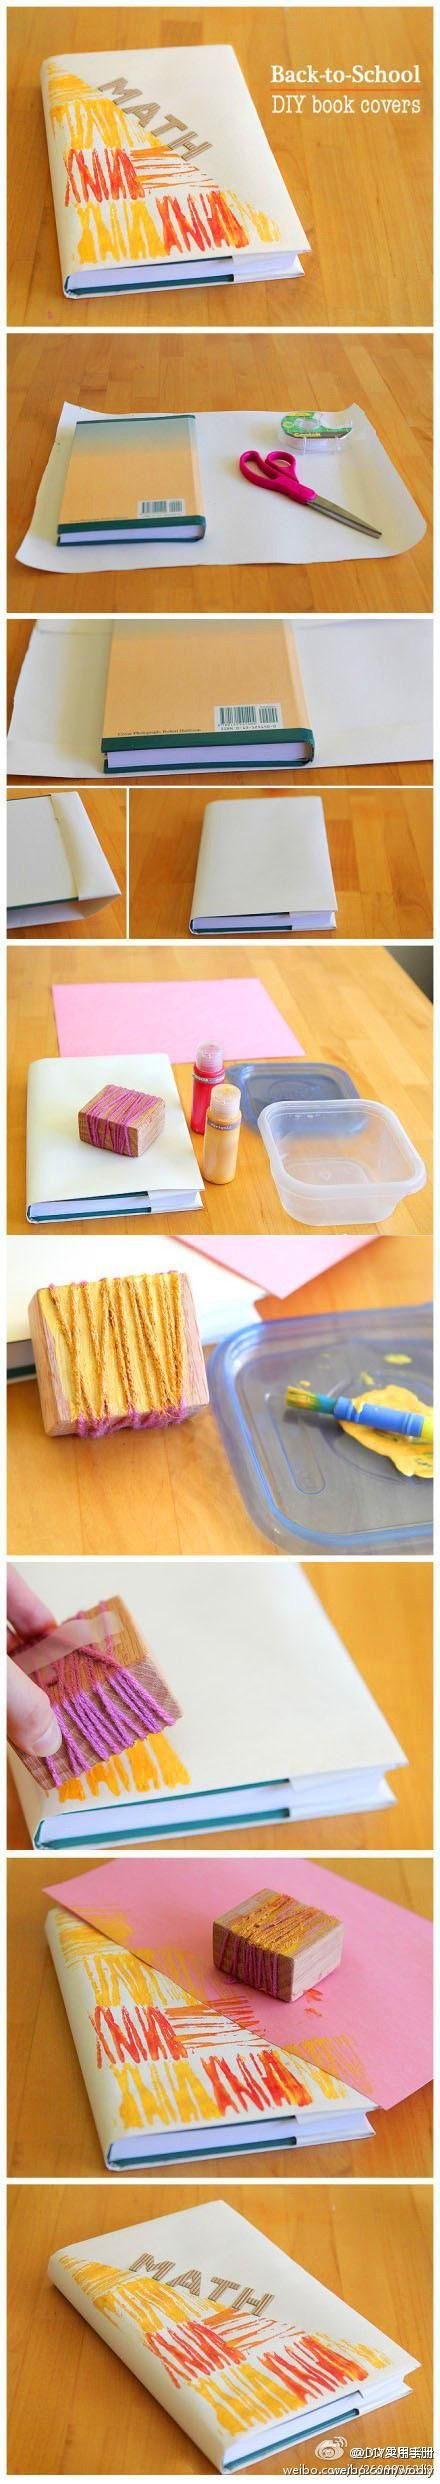 Diy Book Cover Step By Step : Diy tutorial back to school book cover